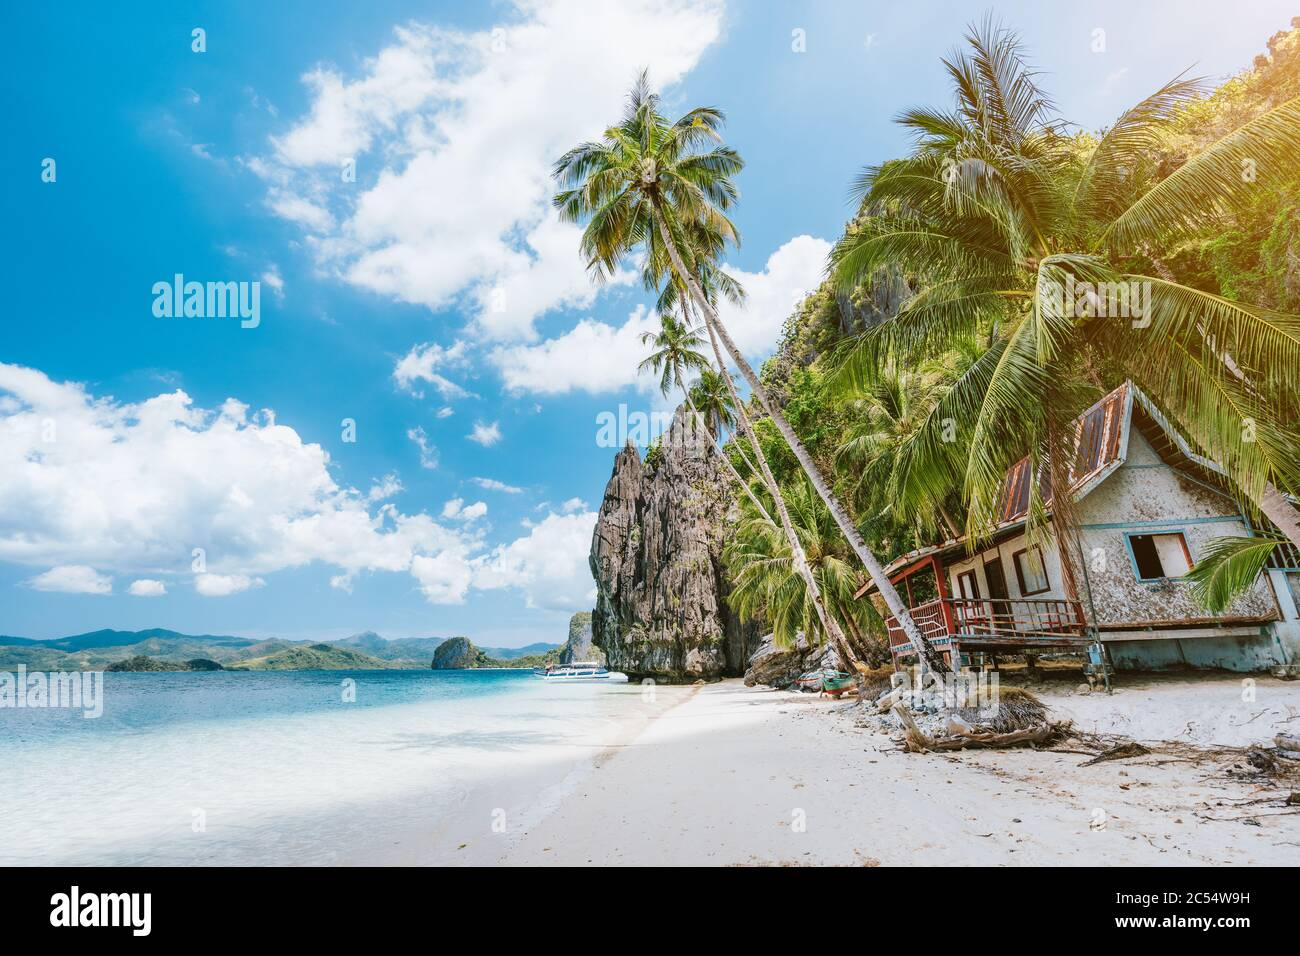 Vacation holiday on Palawan - El Nido island hopping tour. Lonely deserted hut under palm trees, cliff rocks in background. Stock Photo